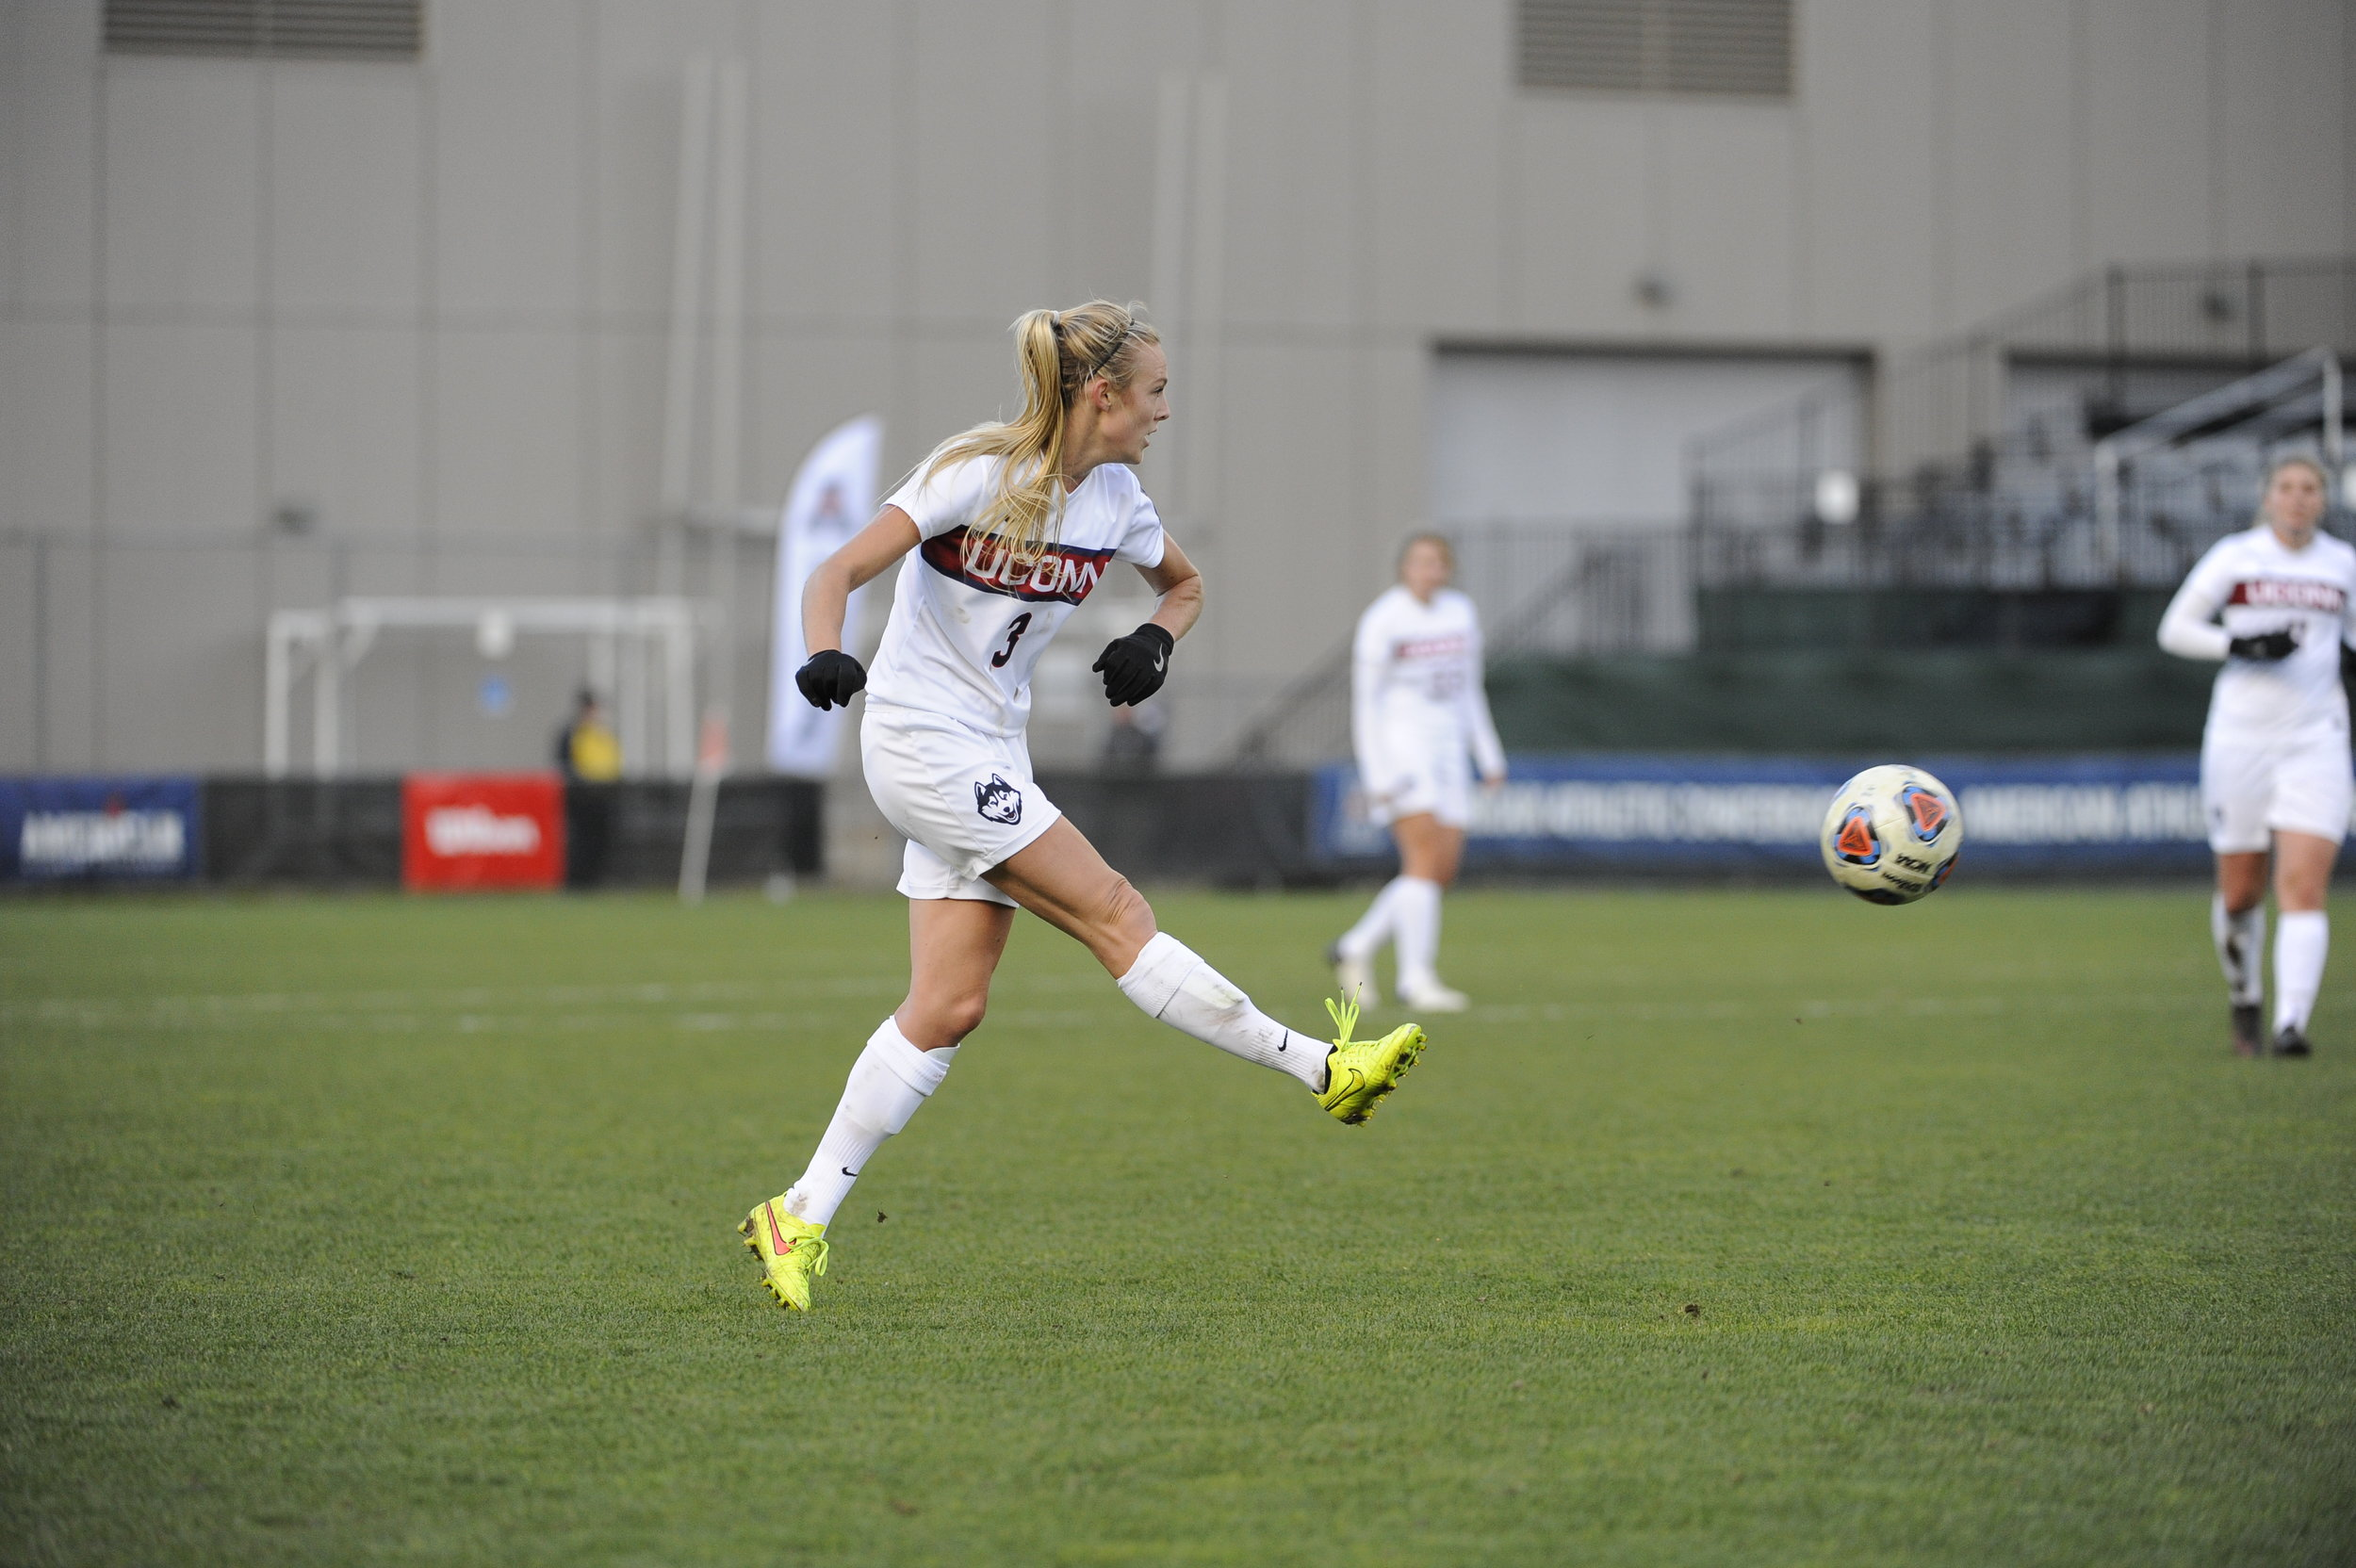 Senior forward/midfielder Rachel Hill kicks the ball during a 1-0 win over SMU in the conference finals on Sunday, Nov. 6 at Joseph J. Morrone Stadium. Hill was named the most outstanding offensive player for the tournament. (Jason Jiang/The Daily Campus)